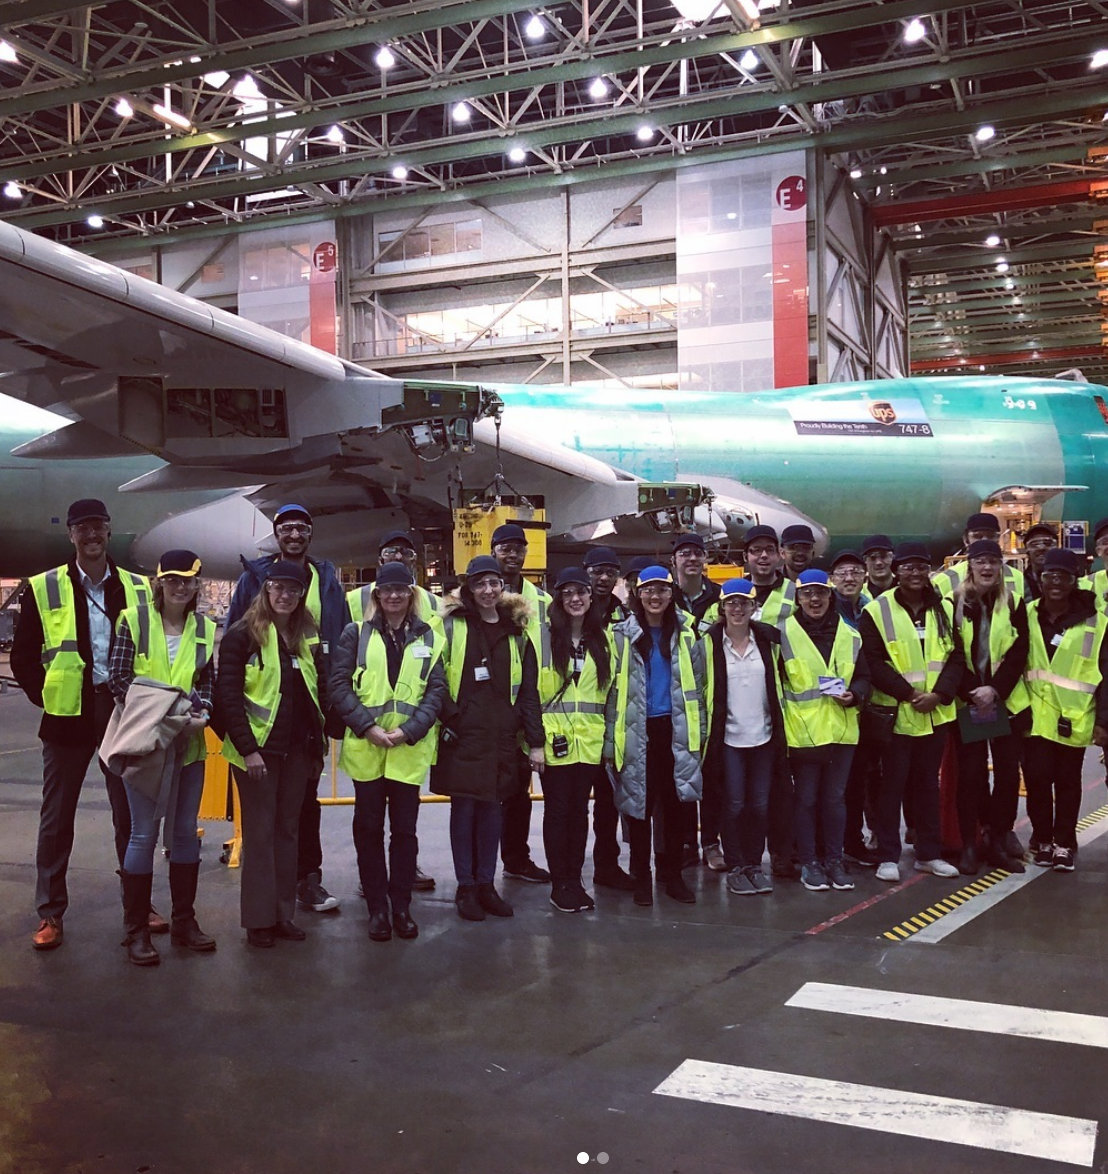 Last stop in the #pnw, @boeing ✈️! For an #avgeek like me, touring the world renowned Everett factory was quite a treat. This is where the 747, 767, 777, and 787 planes are made 🛩.   At 472M cubic feet needed to house these manufacturing lines, the Everett factory is the largest building in the world.   ✅Coolest part of the day: flying the 787 Dreamliner simulator 👨✈️👩✈️💺💻🛫.   #LGOonthego #DPT2019 #LGO20 #sloaniedayinthelife #thatLGOlife #mymitsloan